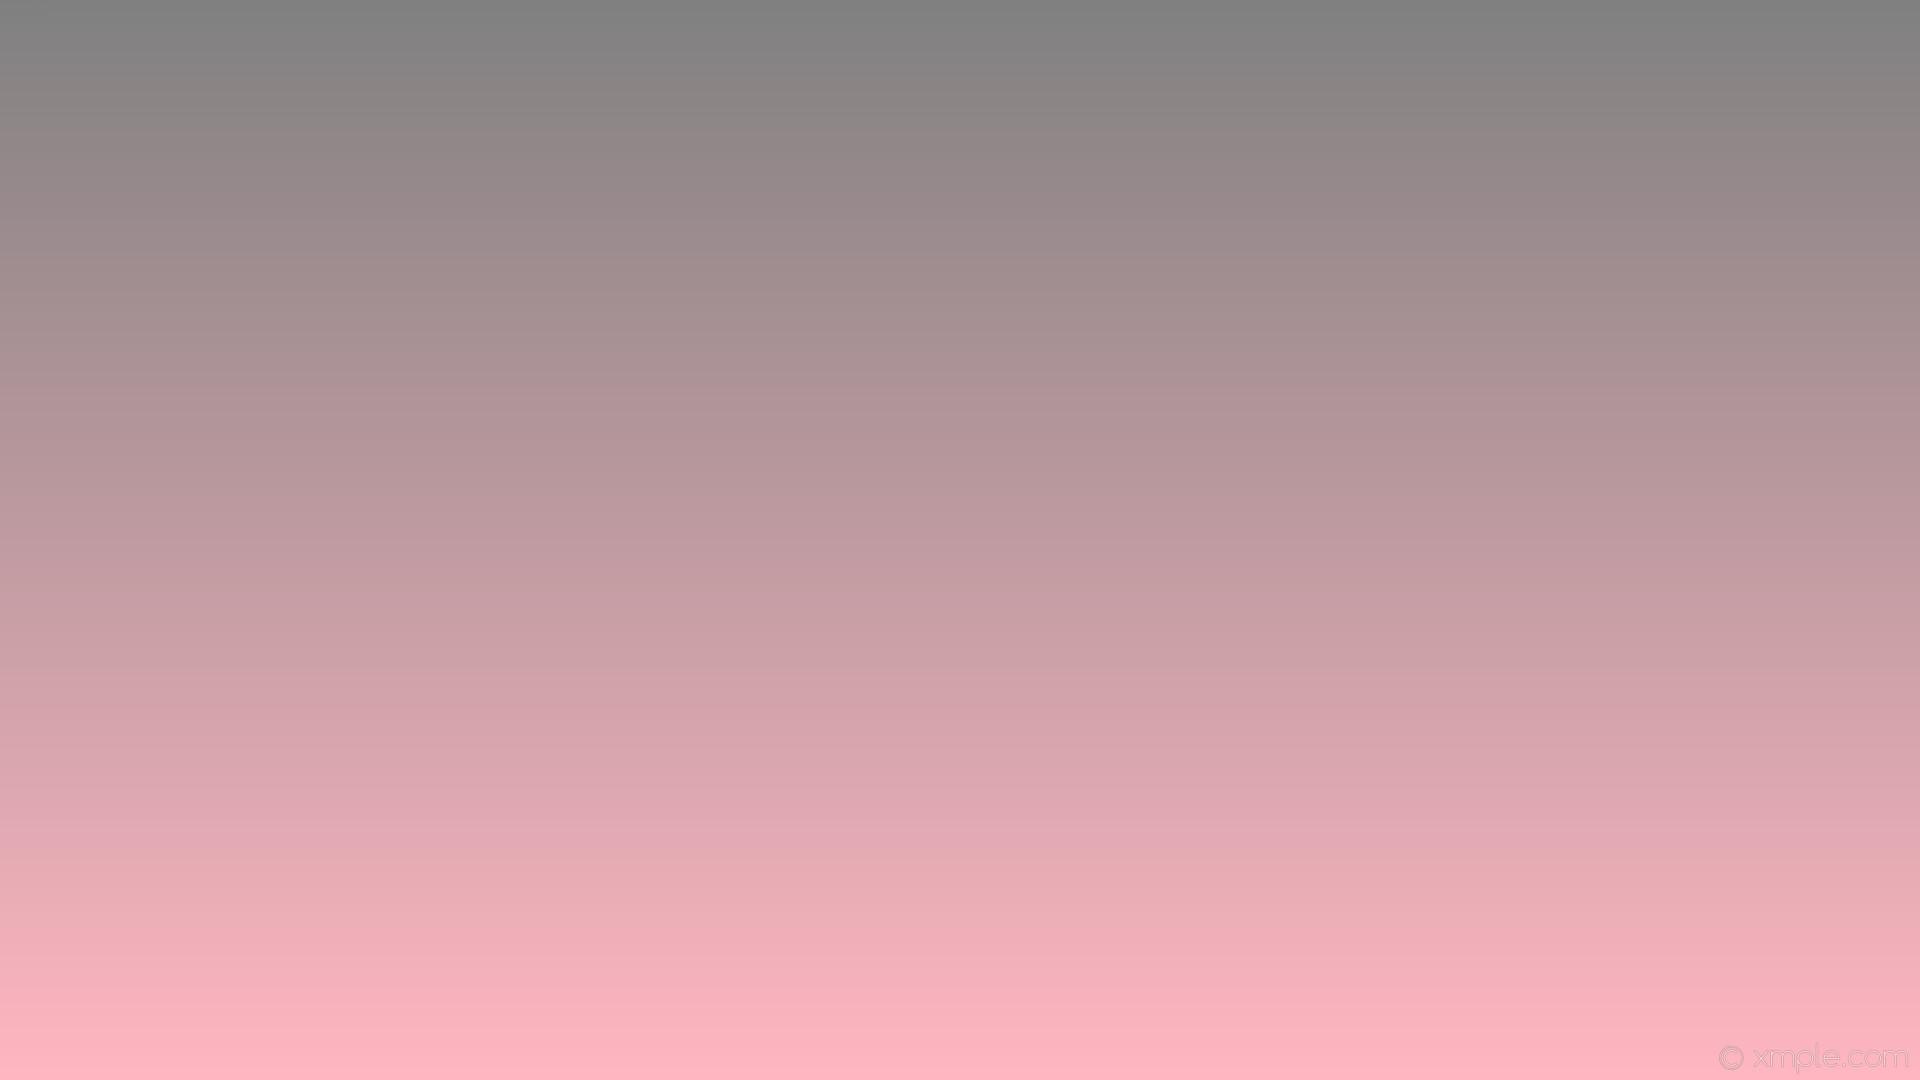 Pink color wallpapers 70 images for Pink and grey wallpaper